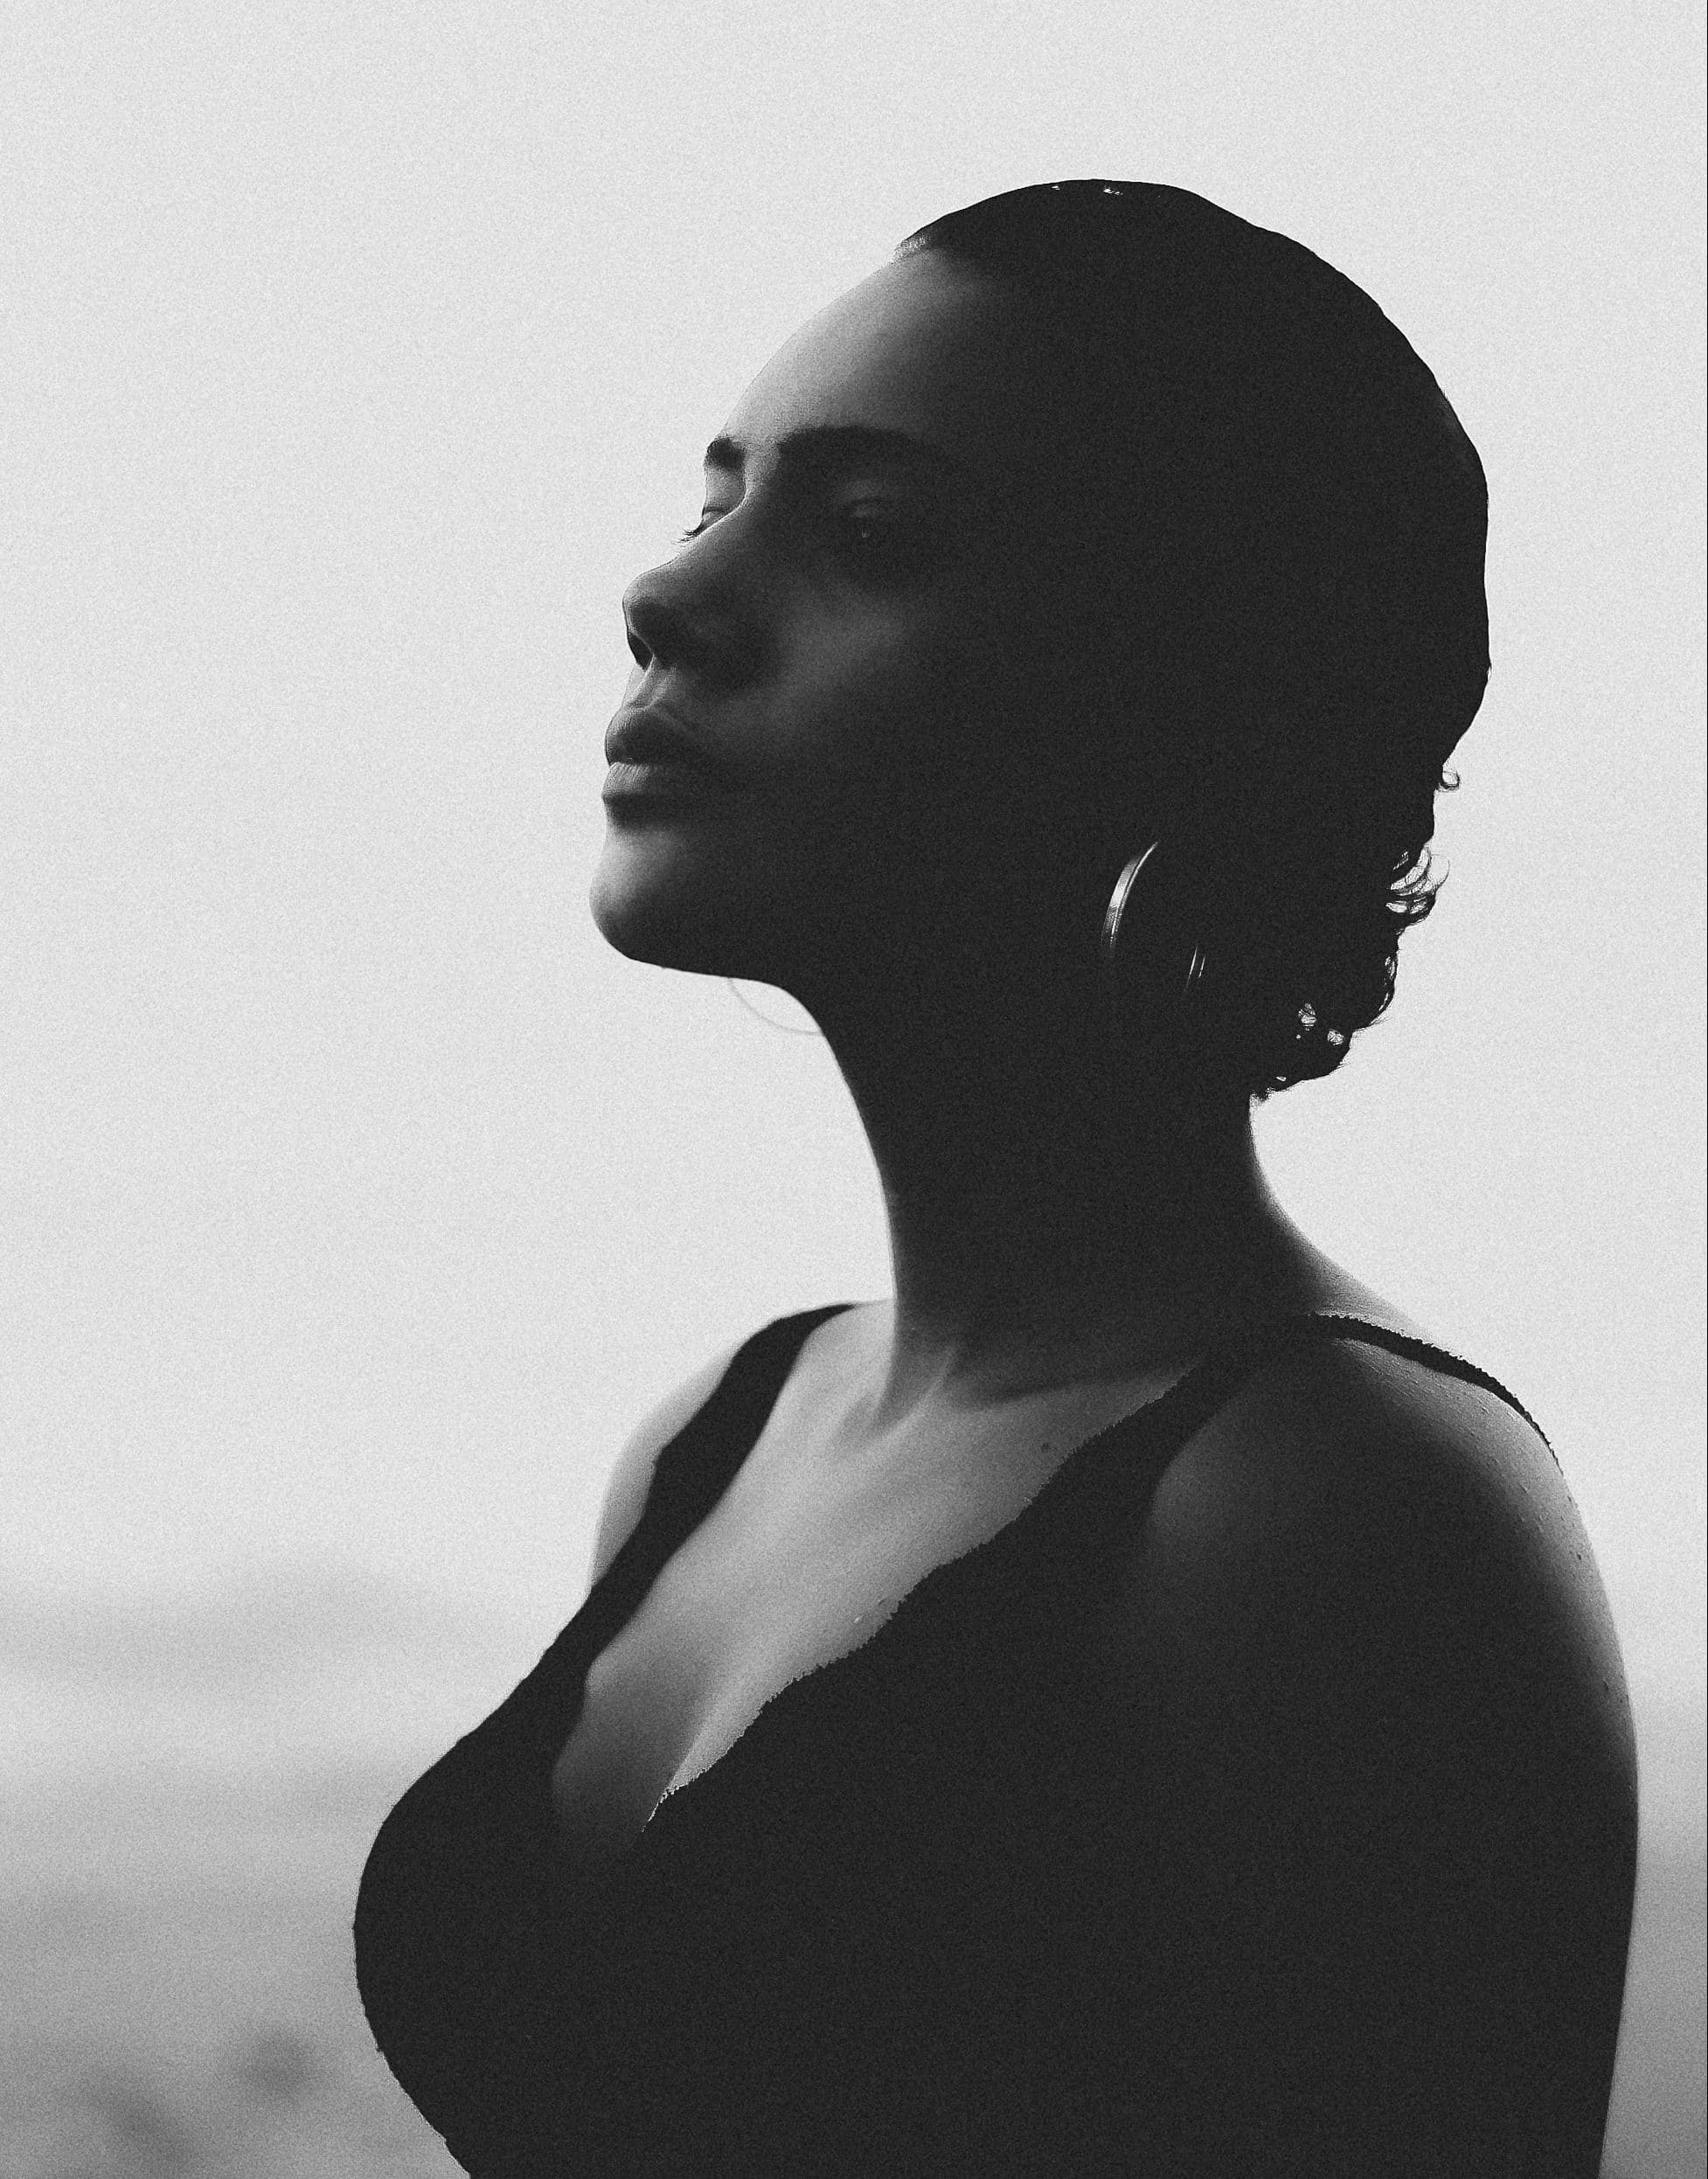 woman of color staring off into distance